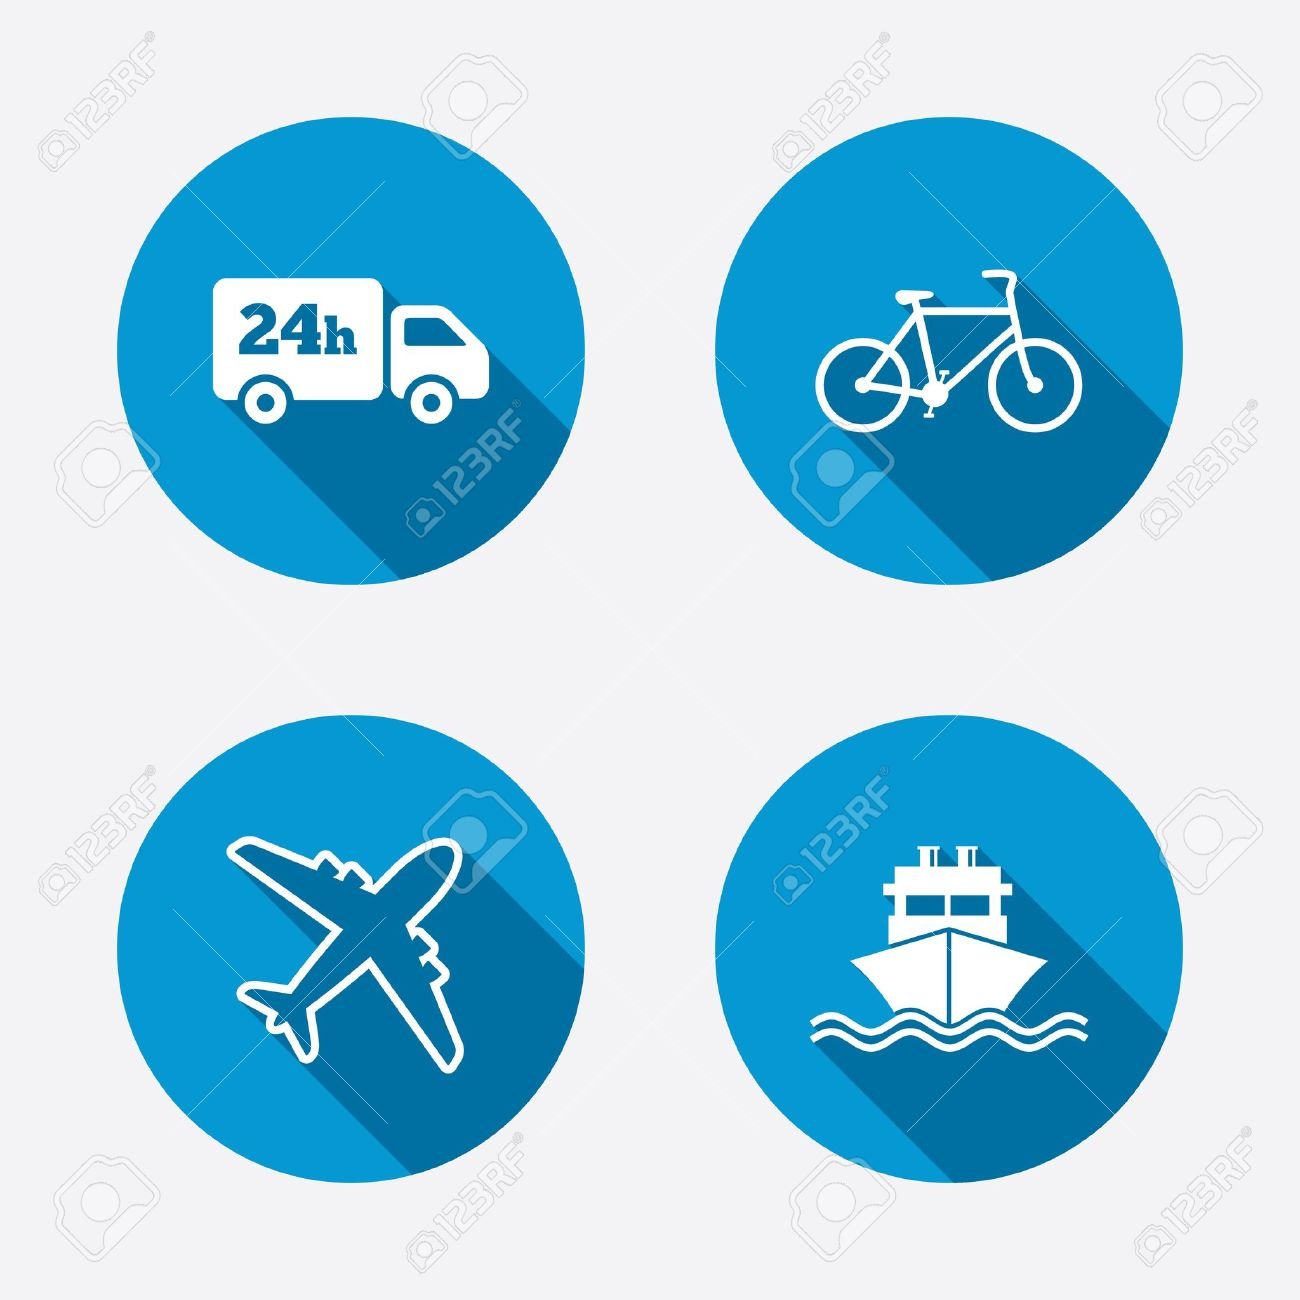 37326934-Cargo-truck-and-shipping-icons-Shipping-and-eco-bicycle-delivery-signs-Transport-symbols-24h-service-Stock-Vector.jpg